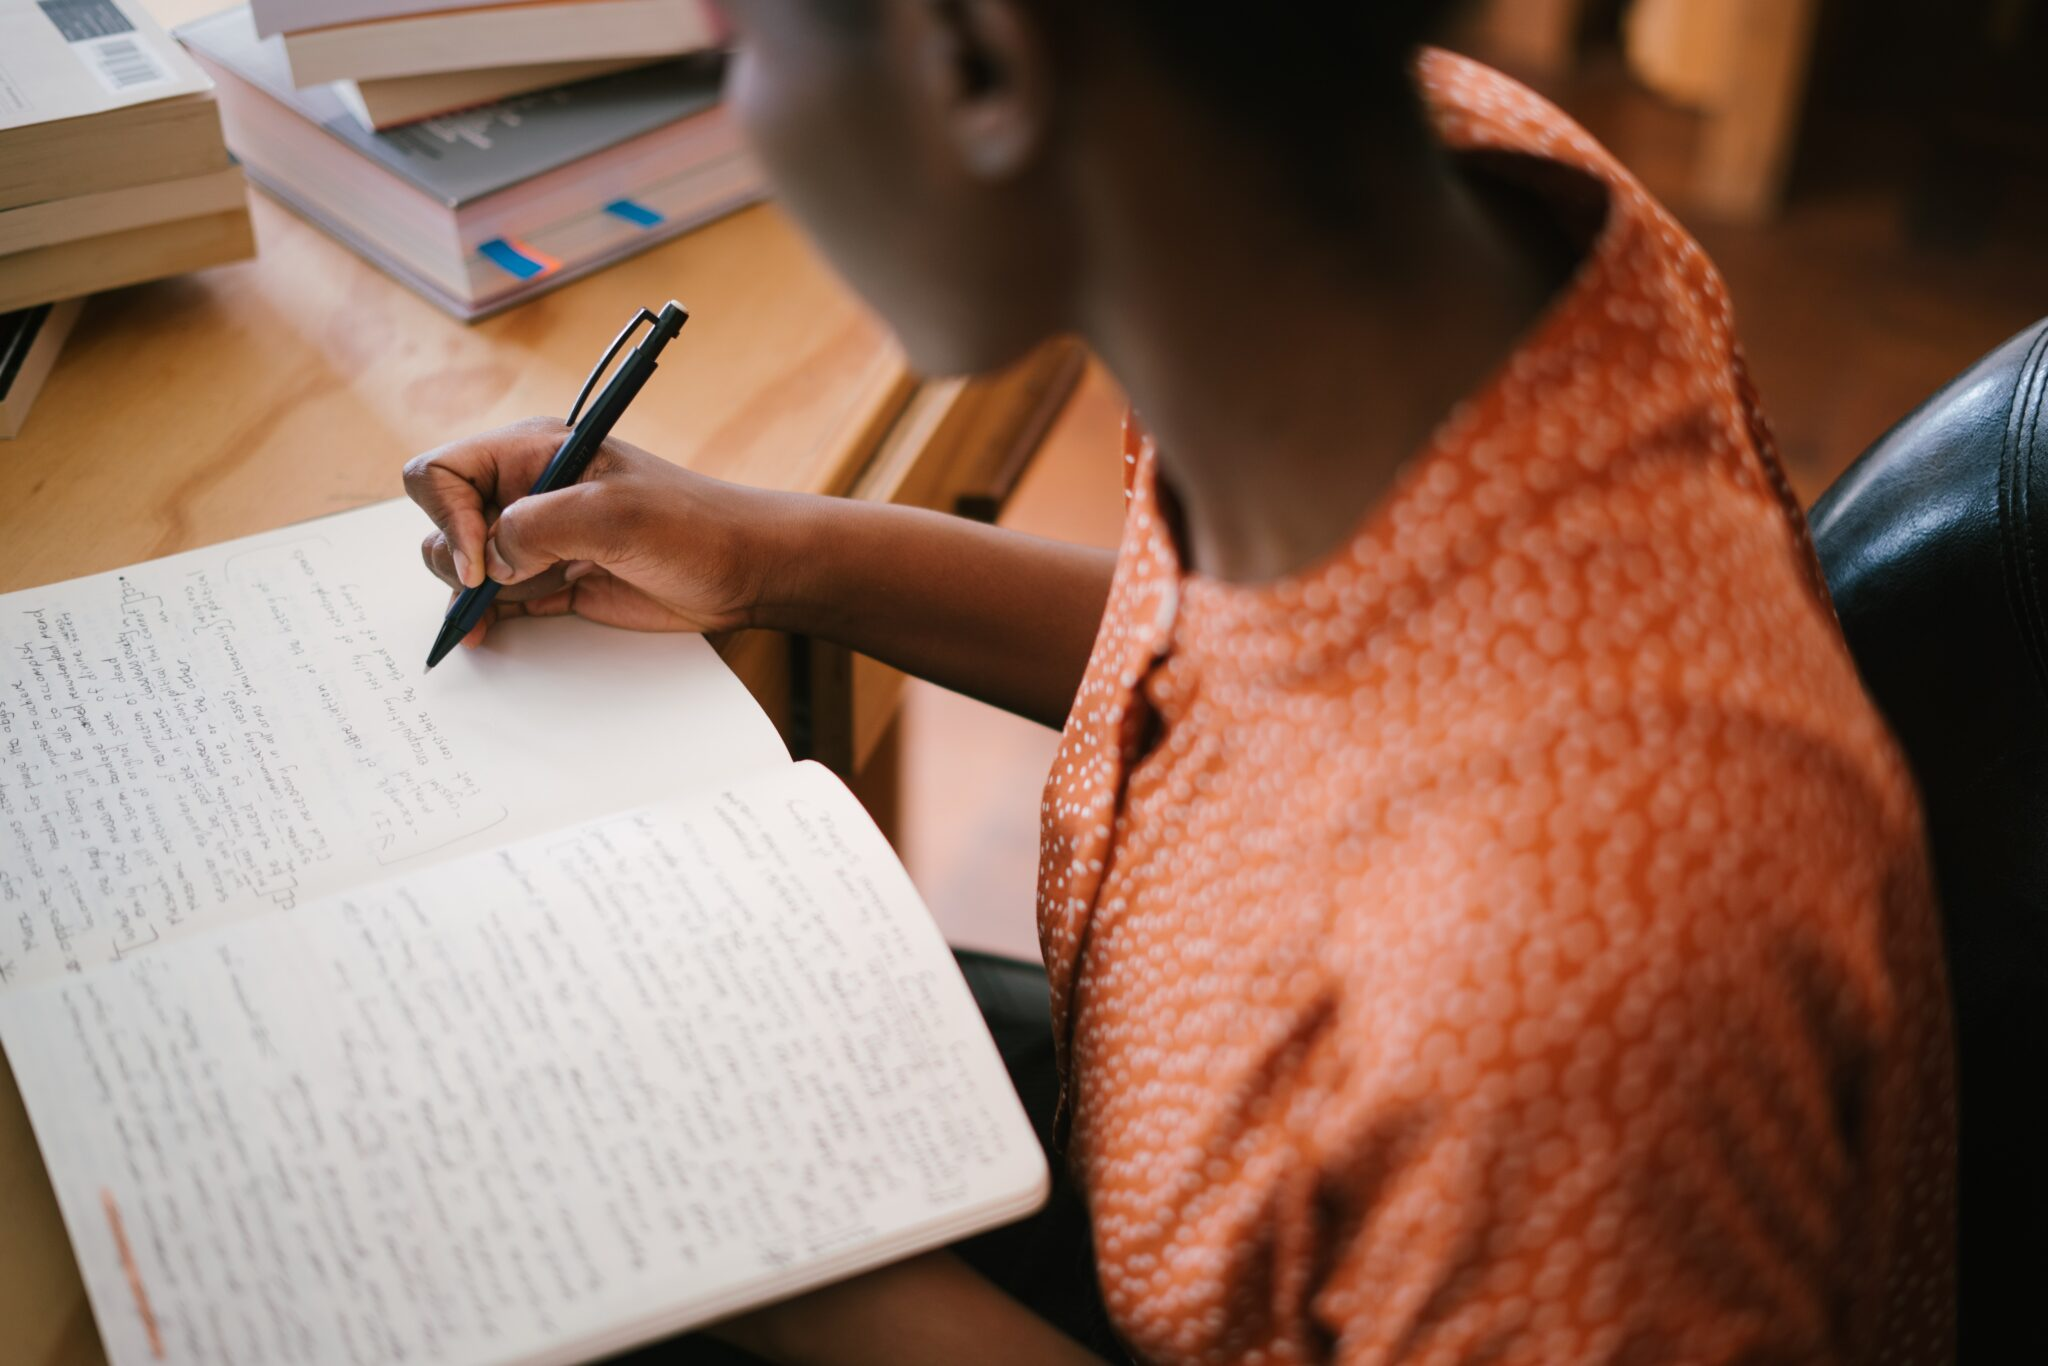 Transliteration takes characters from one alphabet and renders them into another.  Description: A woman wearing an orange blouse is writing in a notebook on her desk, surrounded by books.